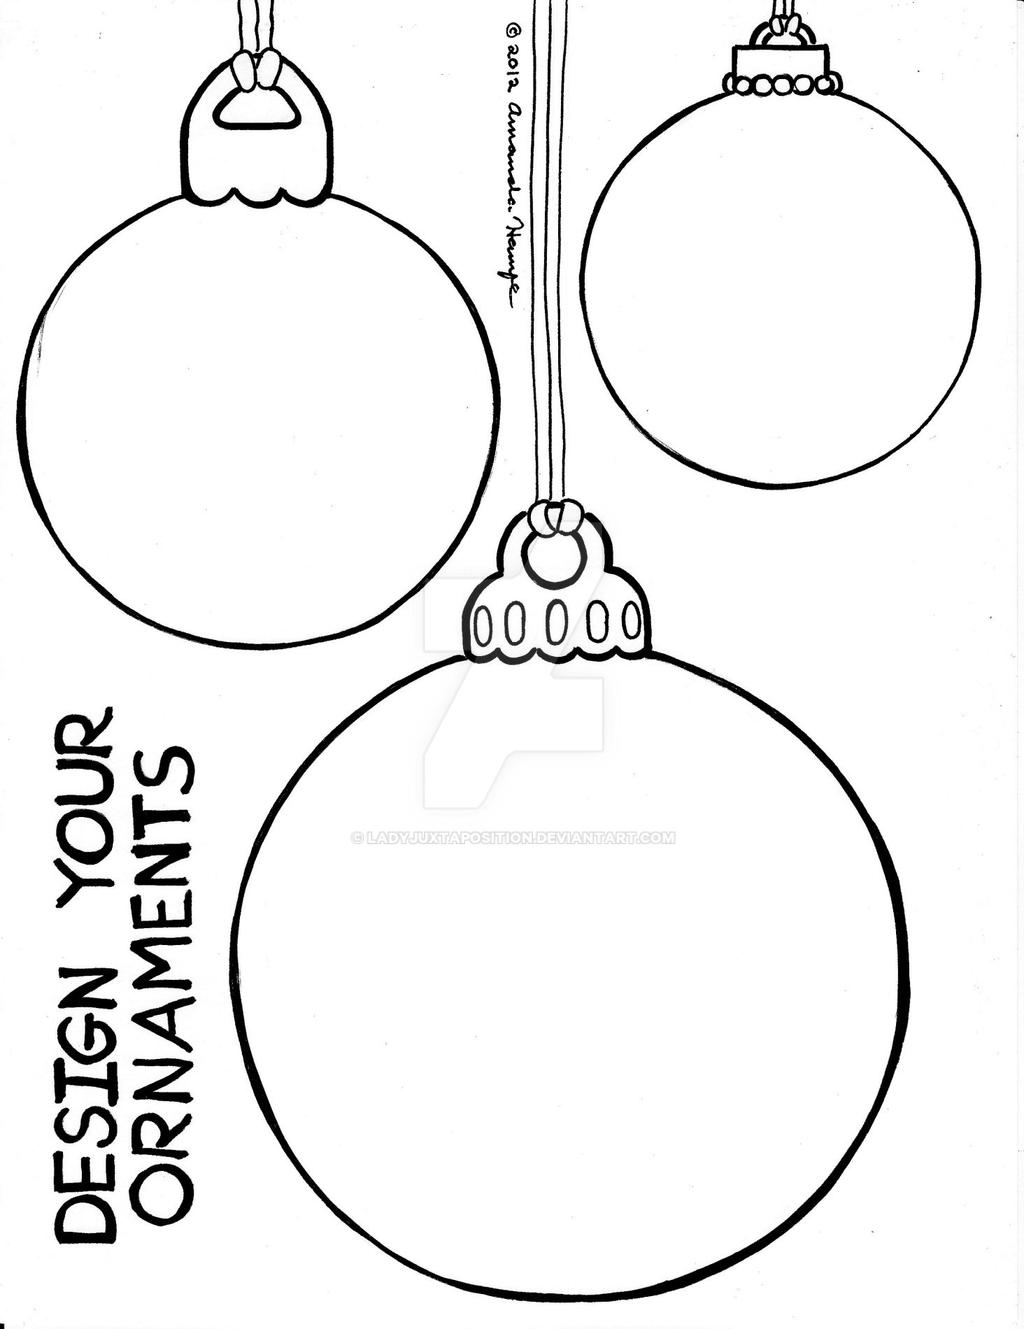 blank ornament coloring pages - photo#25